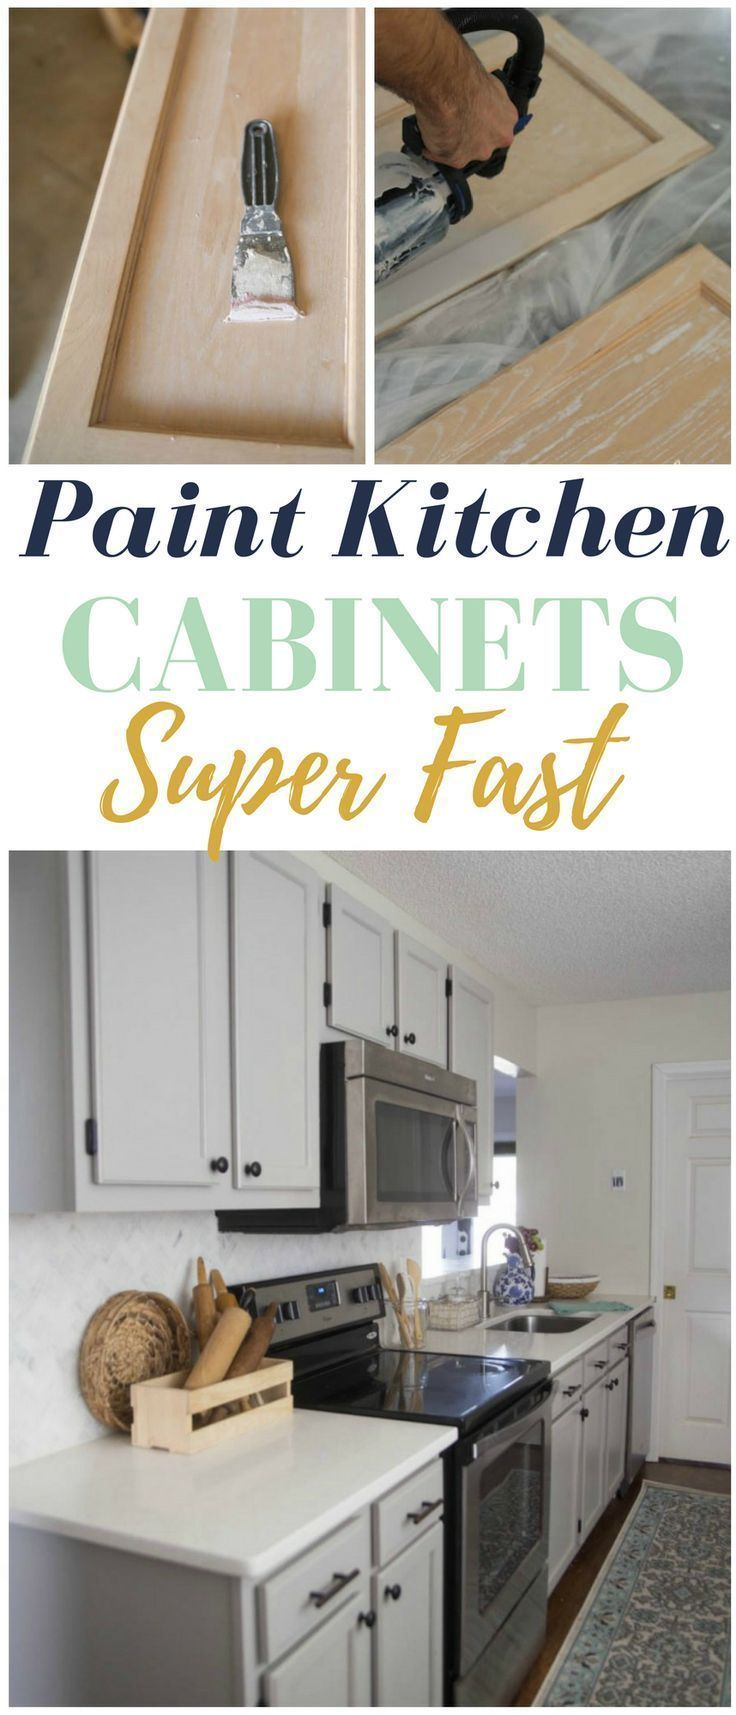 How to Paint Kitchen Cabinets Super Fast